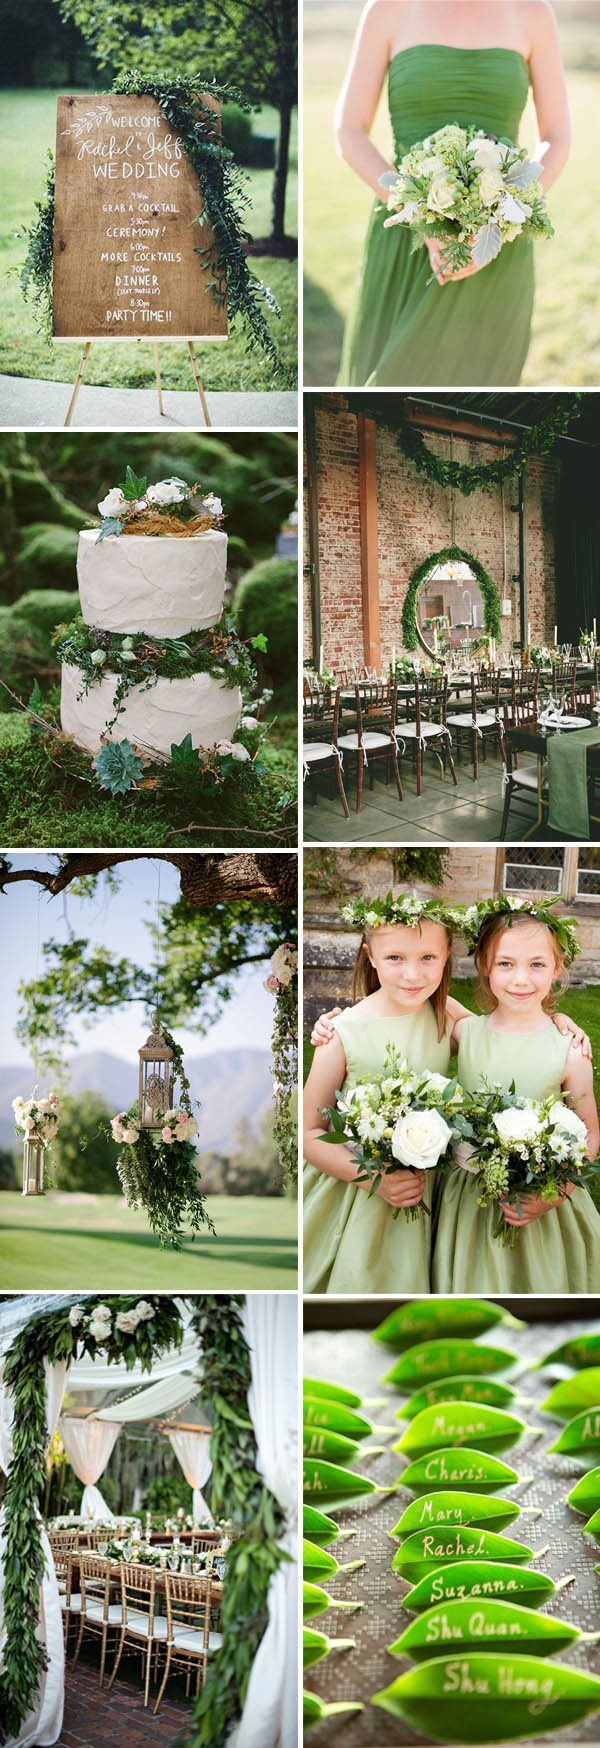 30-amazing-greenery-wedding-ideas-for-20161